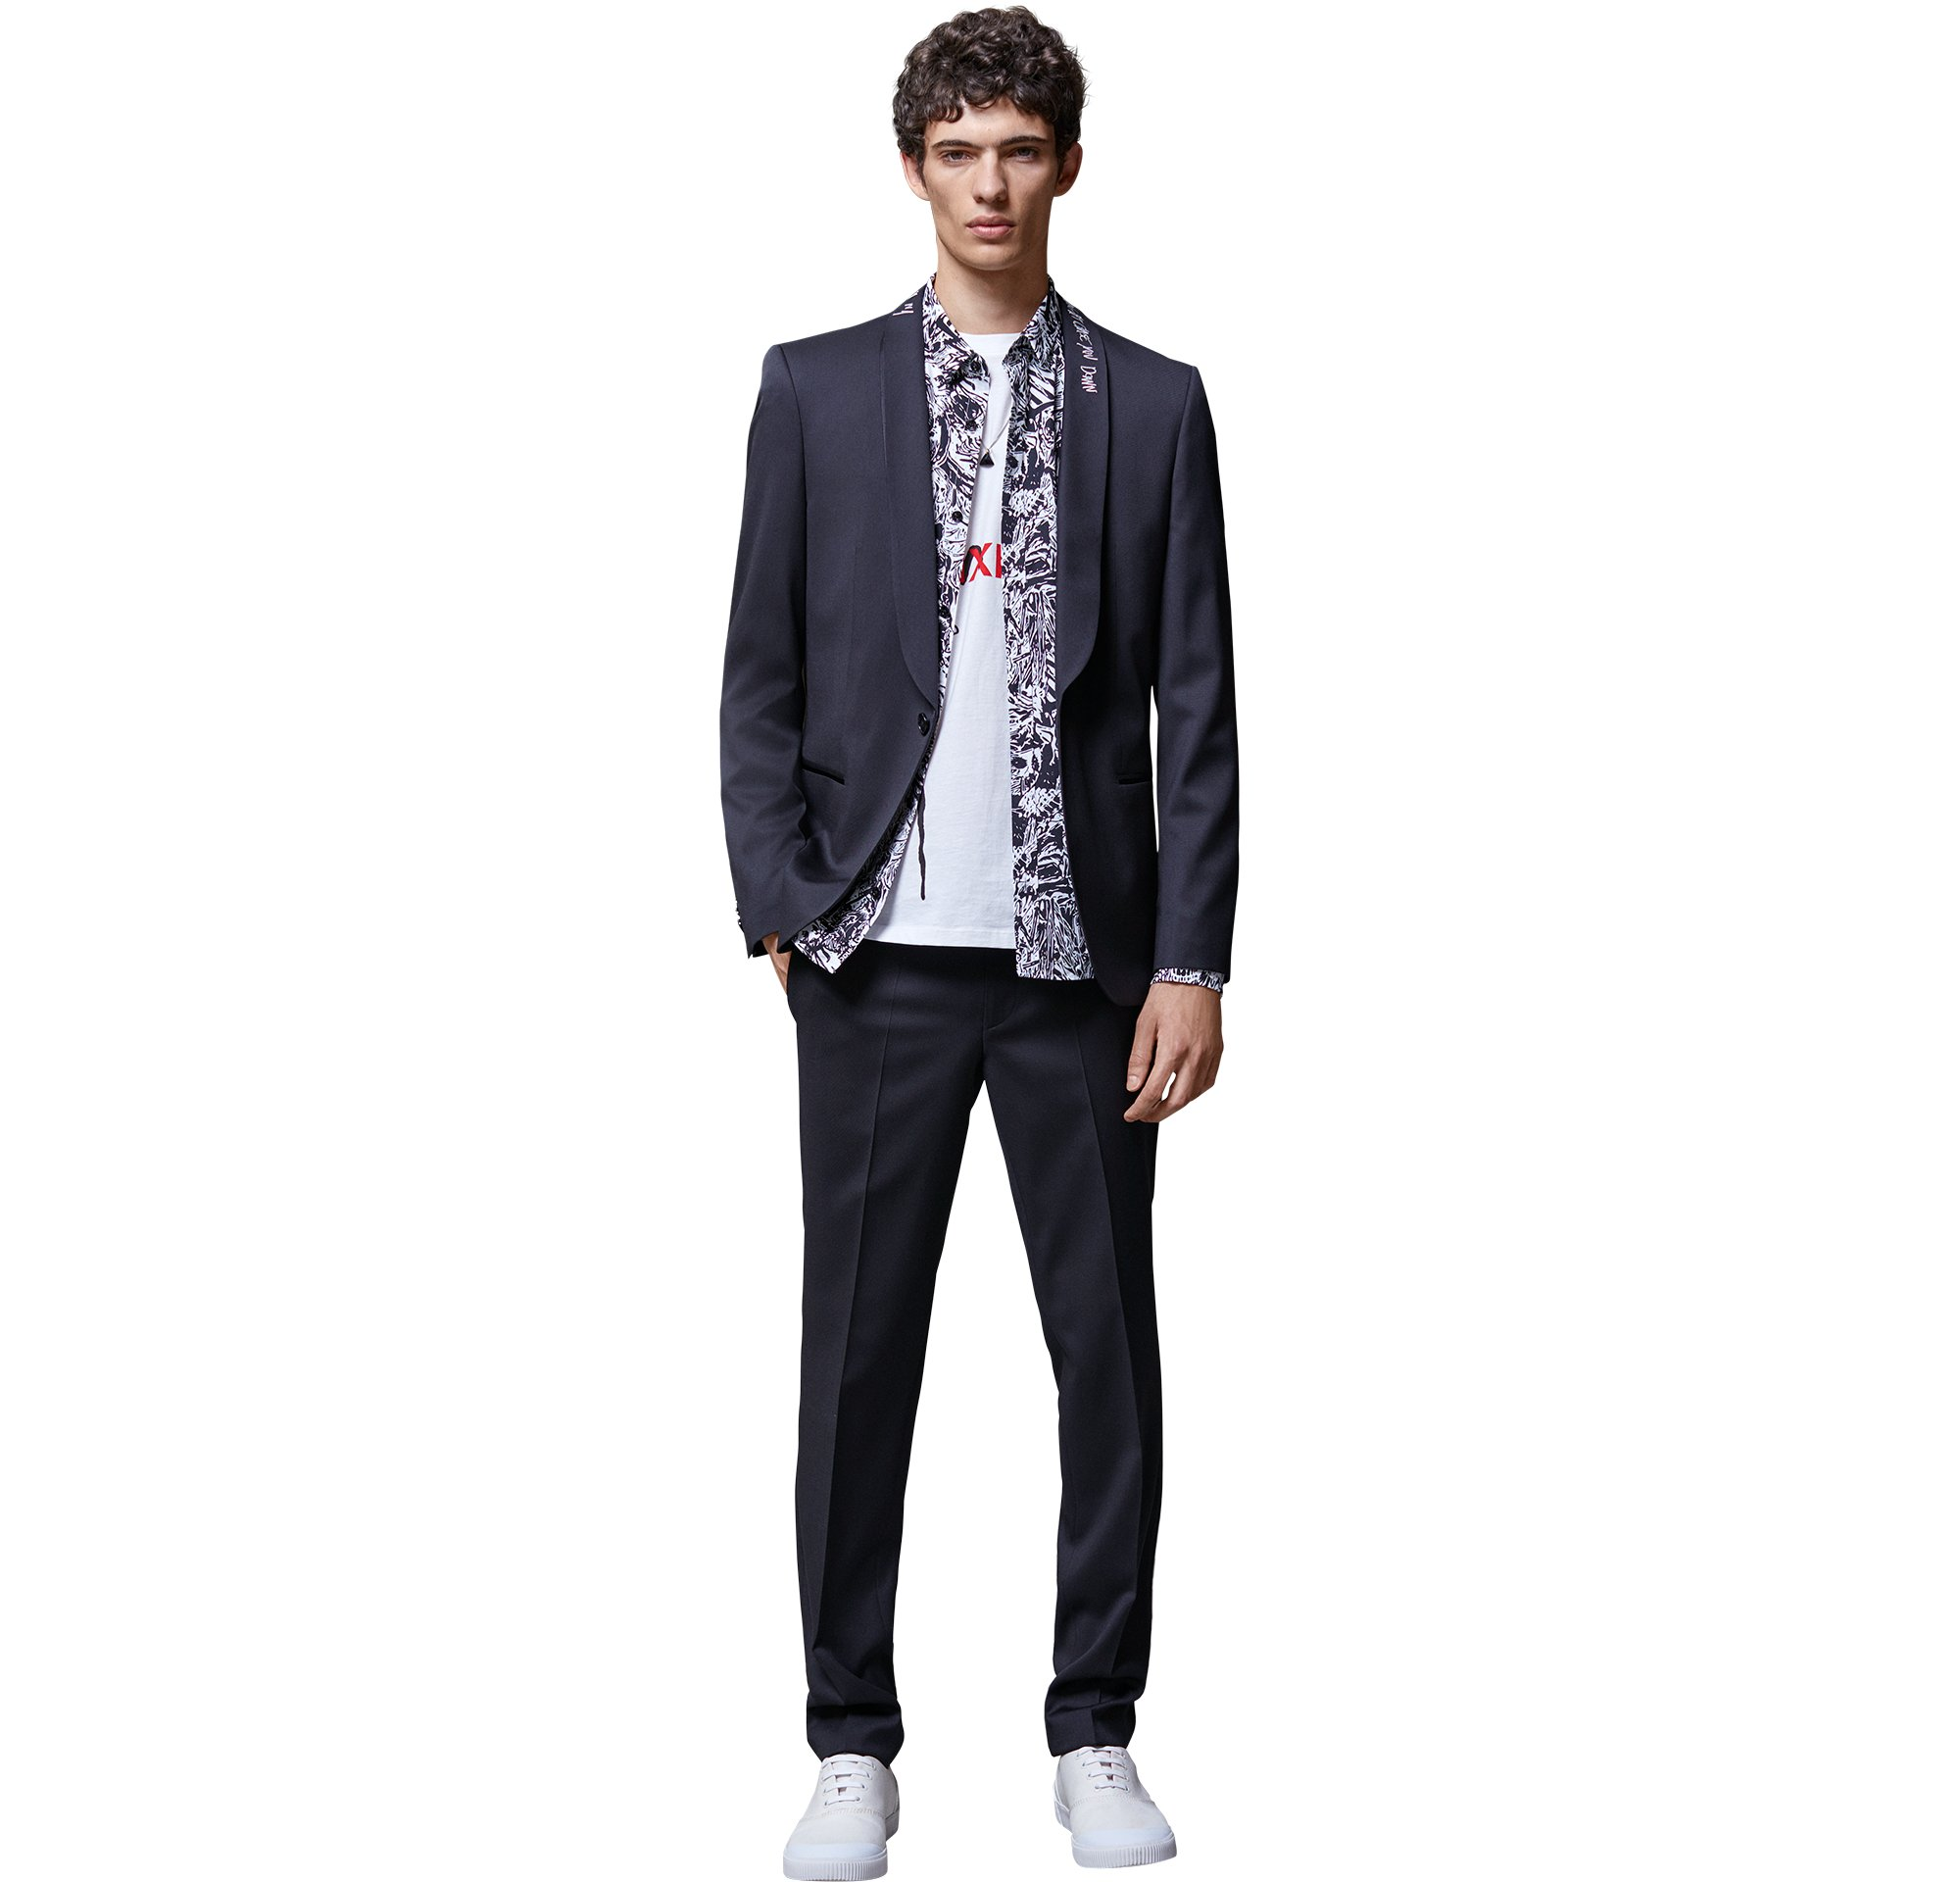 HUGO_Men_SR18_Look_19,